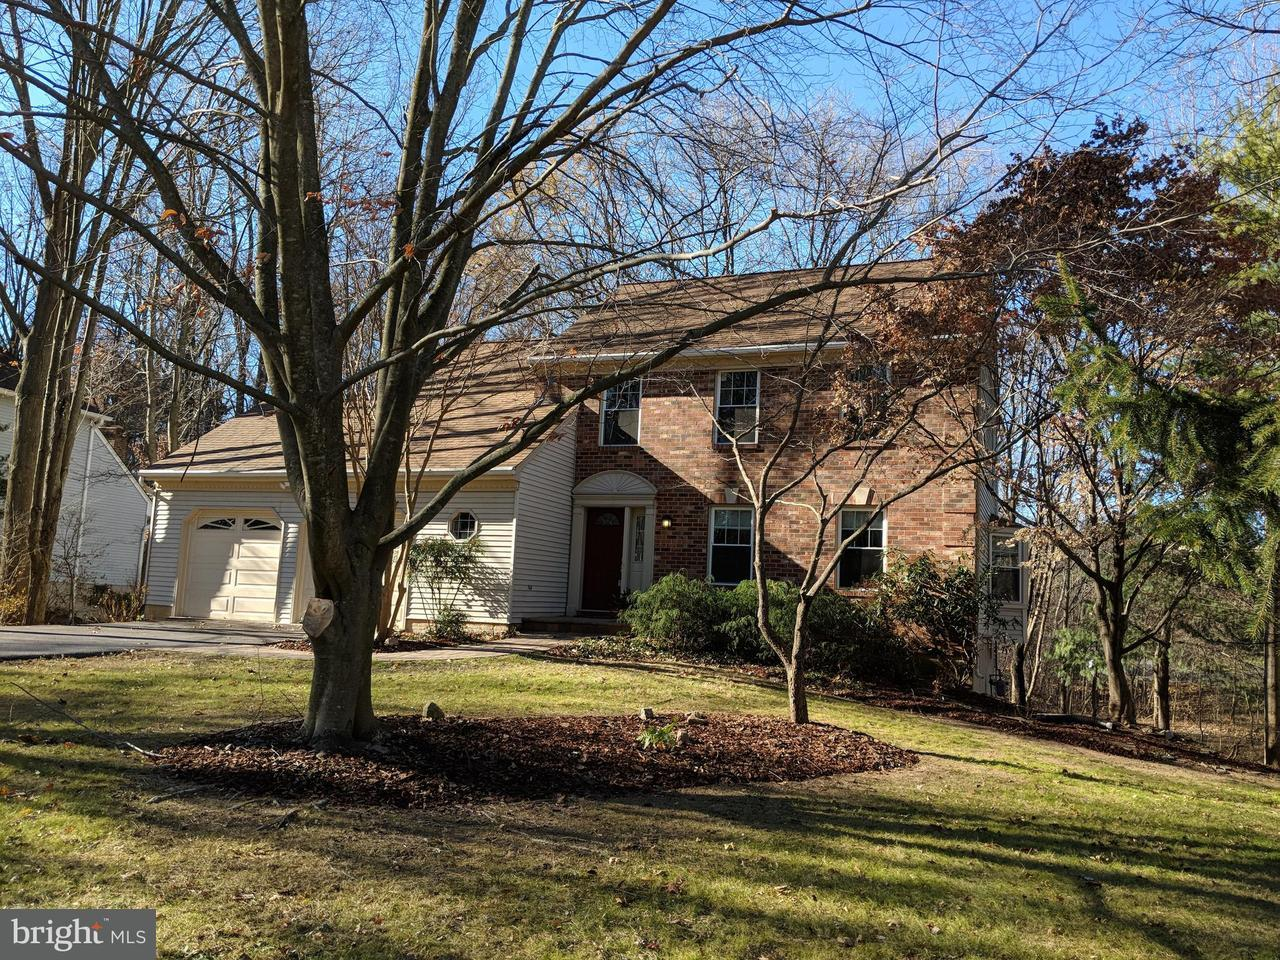 10265 Bristol Channel Ellicott City Md Mls 1004313415 Better Homes And Gardens Real Estate